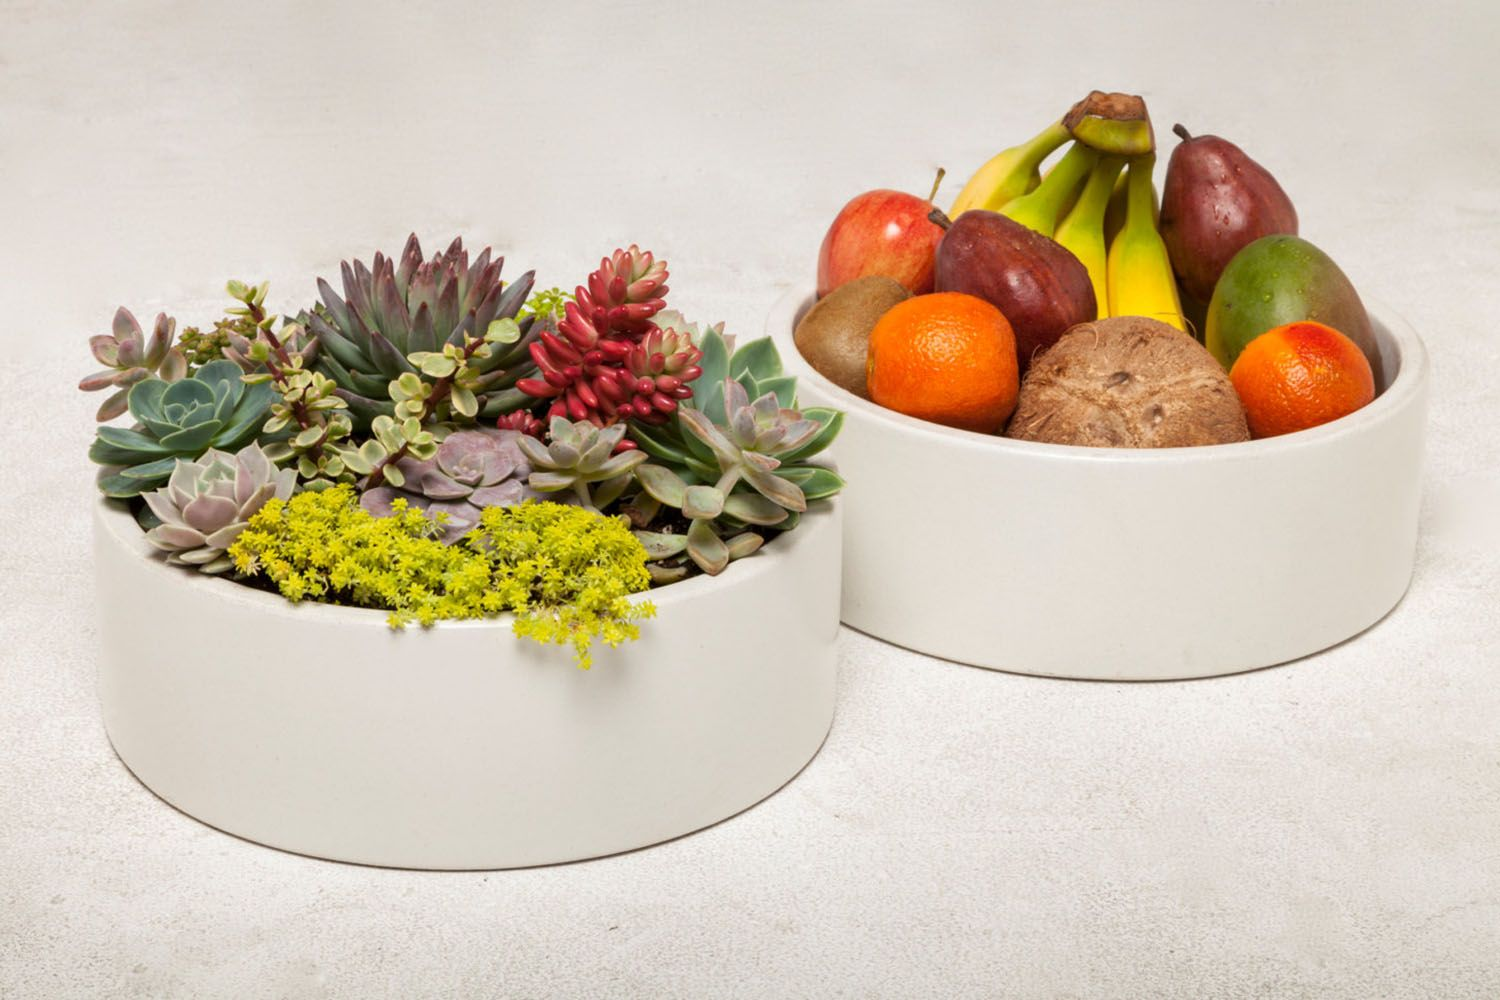 From Auré Aura: Large Concrete Planter & Bowl Concrete Planter, Concrete Bowl or Concrete Container for a unique candle display.